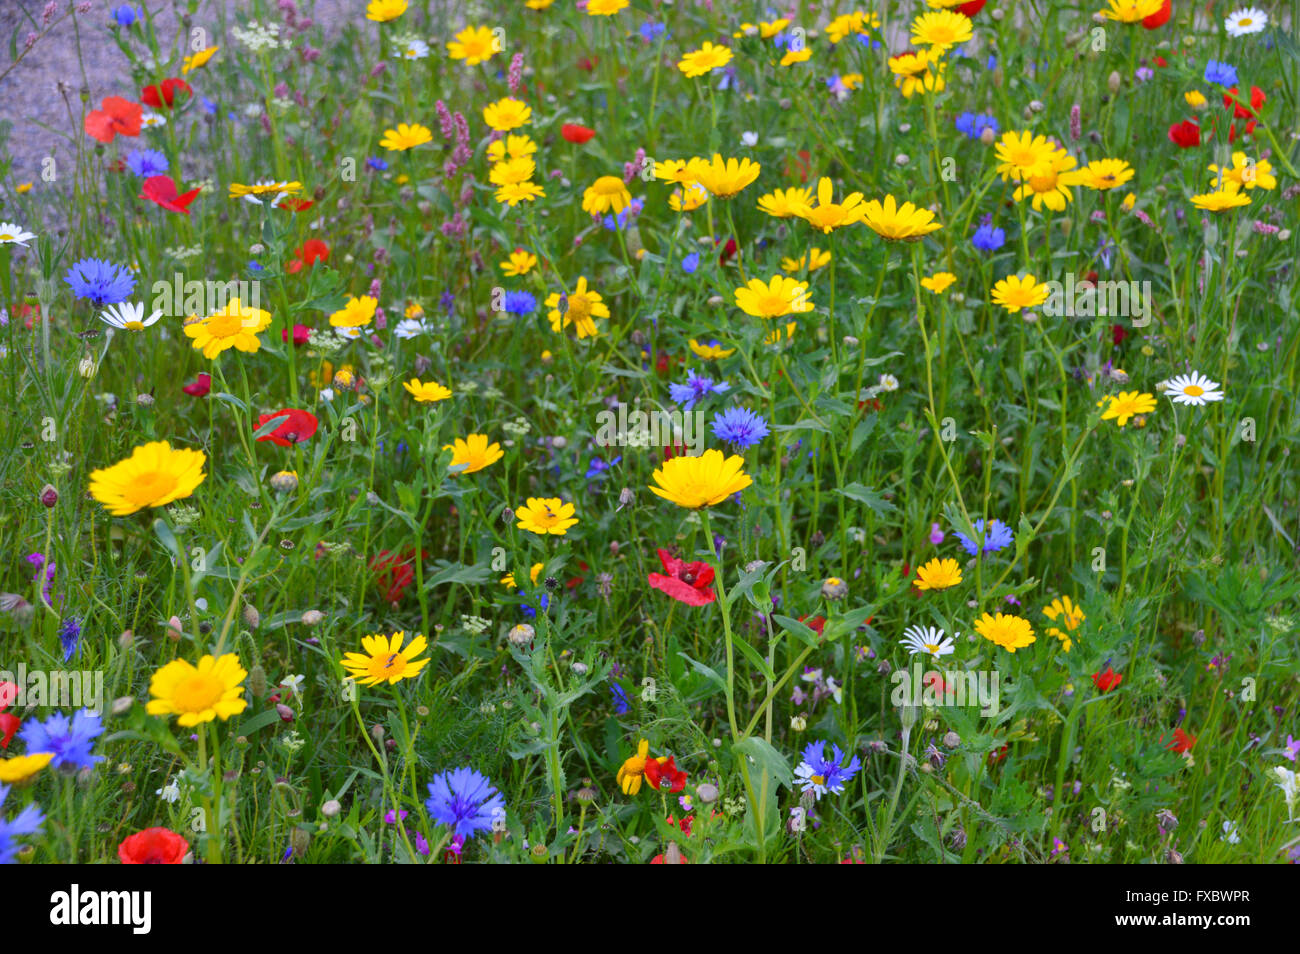 Gorgeous Close Up Of A Colourful Mixed Wild Flower Meadow At Rhs Garden  With Marvelous Close Up Of A Colourful Mixed Wild Flower Meadow At Rhs Garden Harlow Carr  Harrogate Yorkshire Uk With Astounding Shade Garden Ideas Also Island Gardens Station In Addition Gardens Florence Italy And Garden Decorations As Well As Lee Gardens Office Plus Additionally How To Build A Garden Pond From Alamycom With   Marvelous Close Up Of A Colourful Mixed Wild Flower Meadow At Rhs Garden  With Astounding Close Up Of A Colourful Mixed Wild Flower Meadow At Rhs Garden Harlow Carr  Harrogate Yorkshire Uk And Gorgeous Shade Garden Ideas Also Island Gardens Station In Addition Gardens Florence Italy From Alamycom